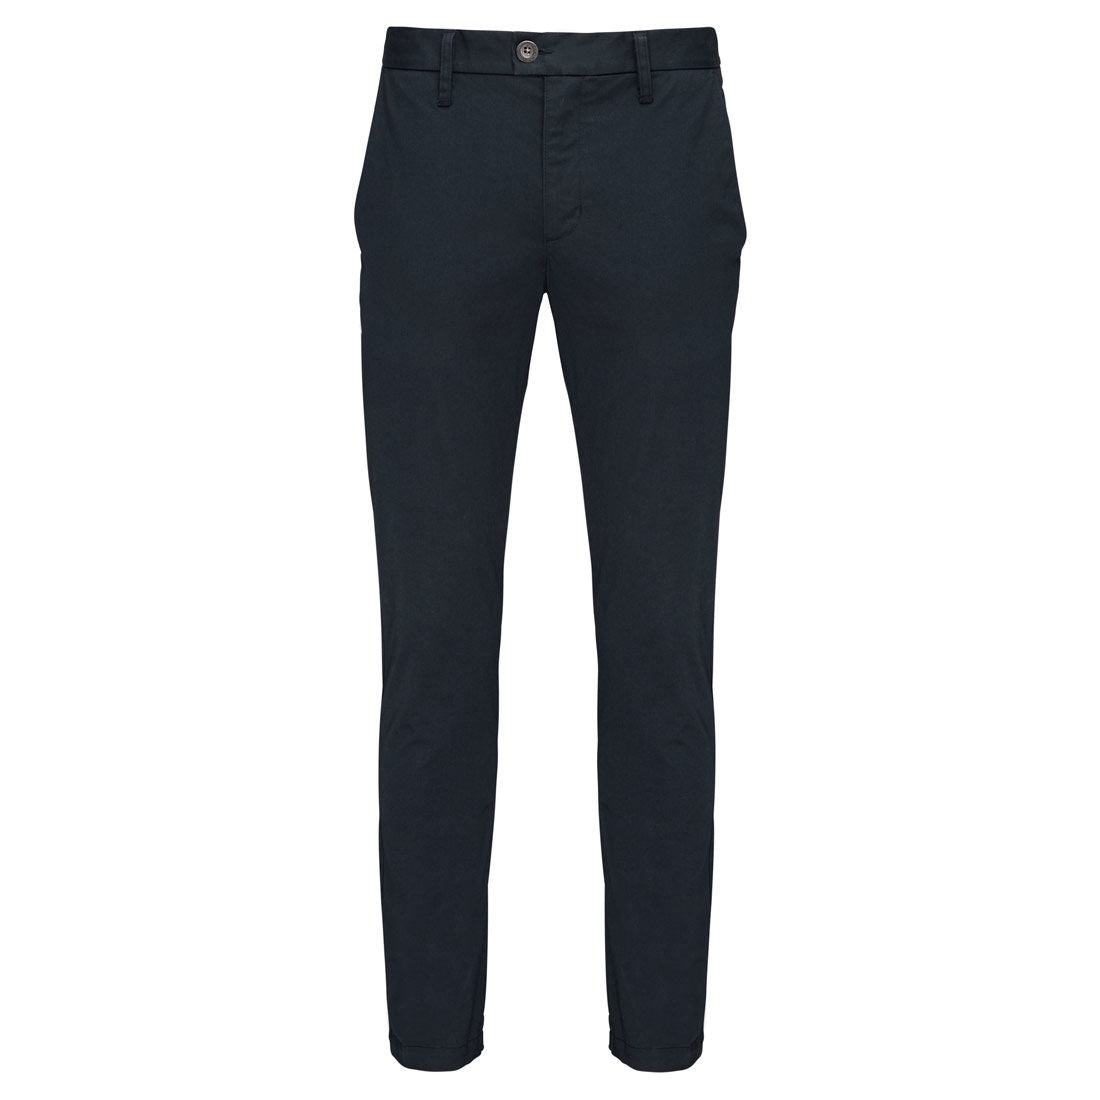 R.M.Williams Lennard Chino Slim Fit Navy